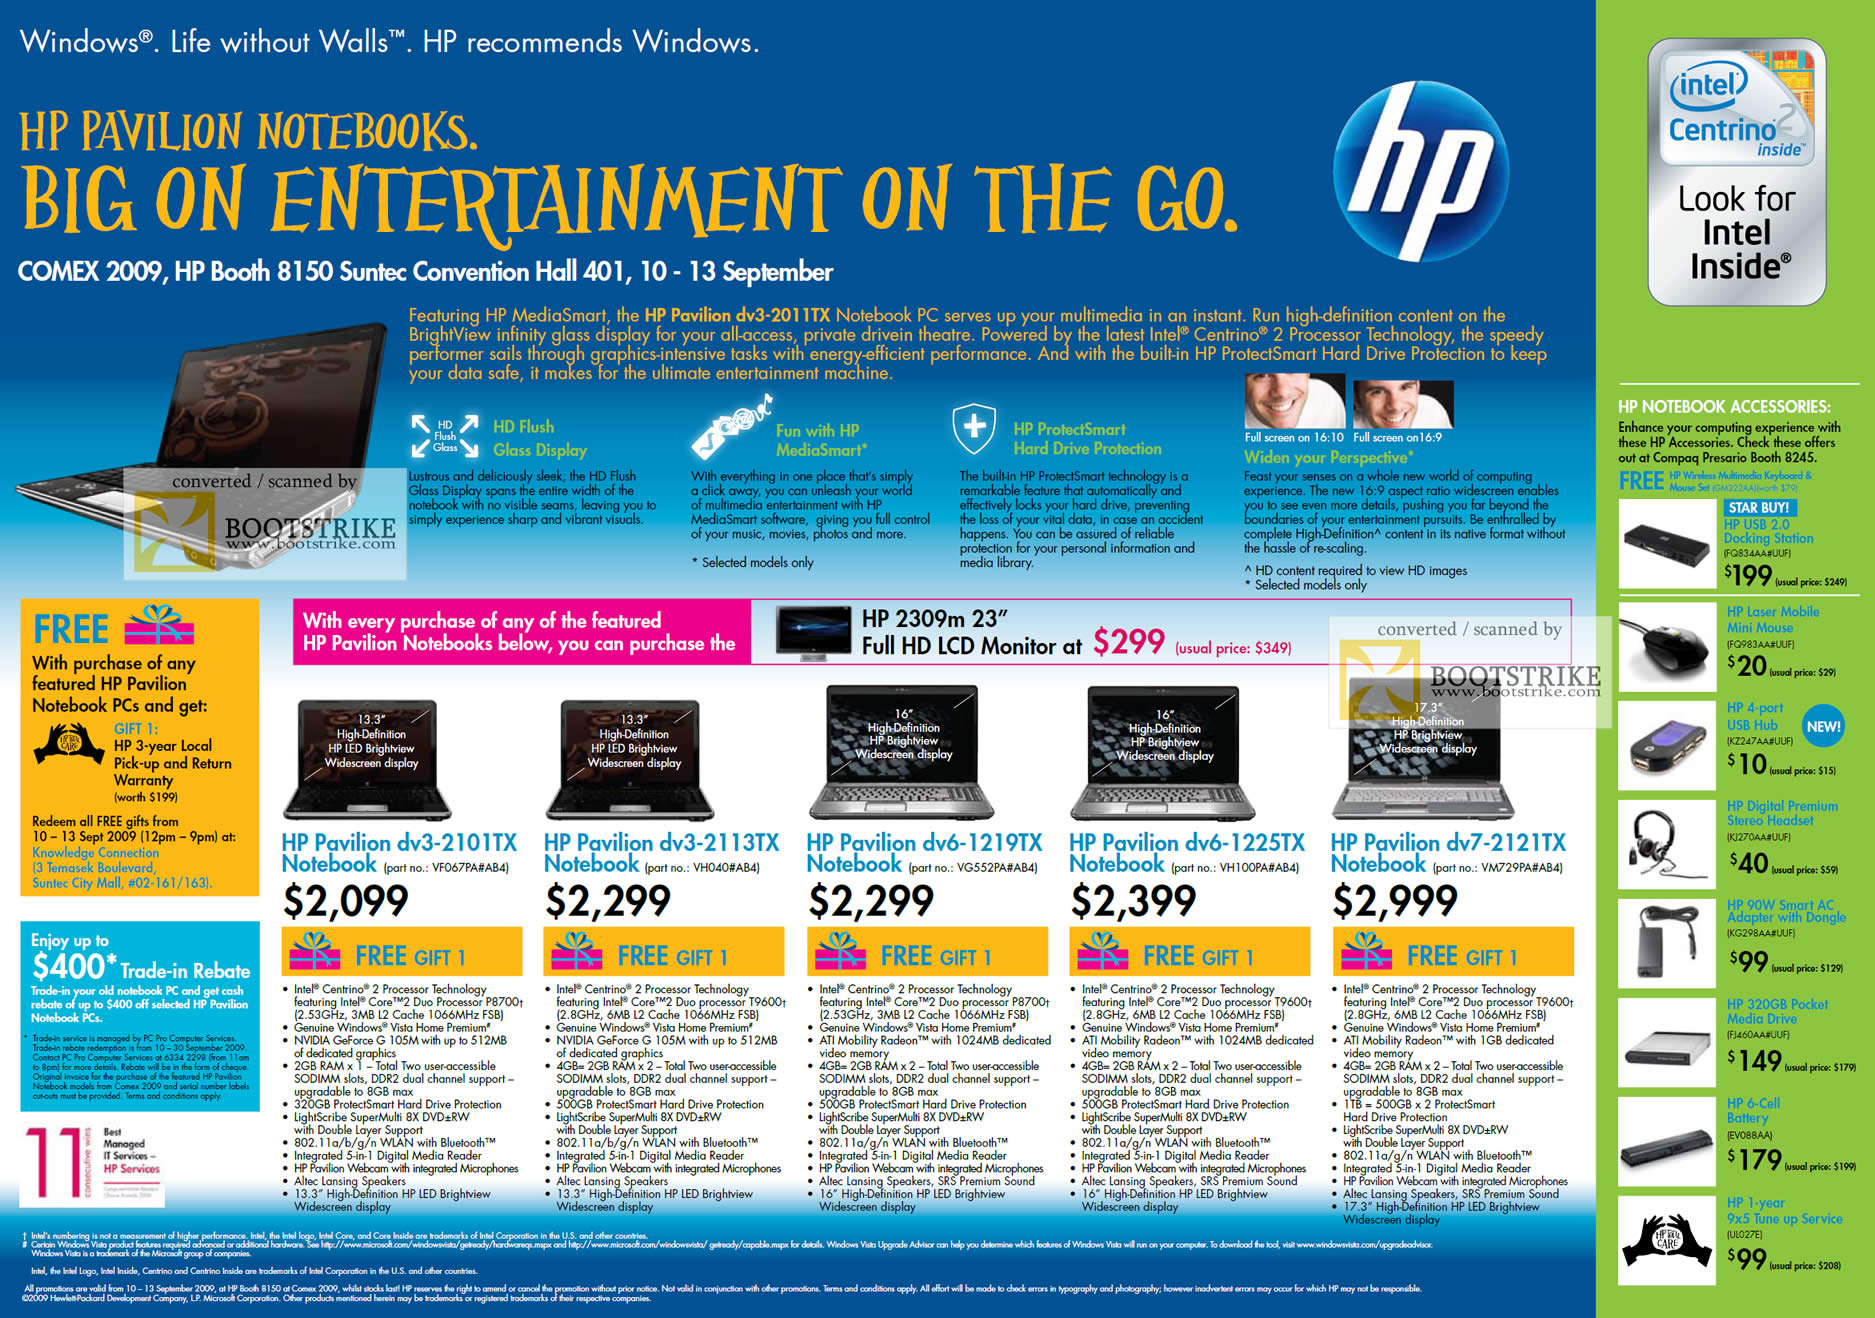 Comex 2009 price list image brochure of HP Pavilion Notebooks Dv3 2101tx 2113tx Dv6 1219tx 1225tx Dv7 2121tx